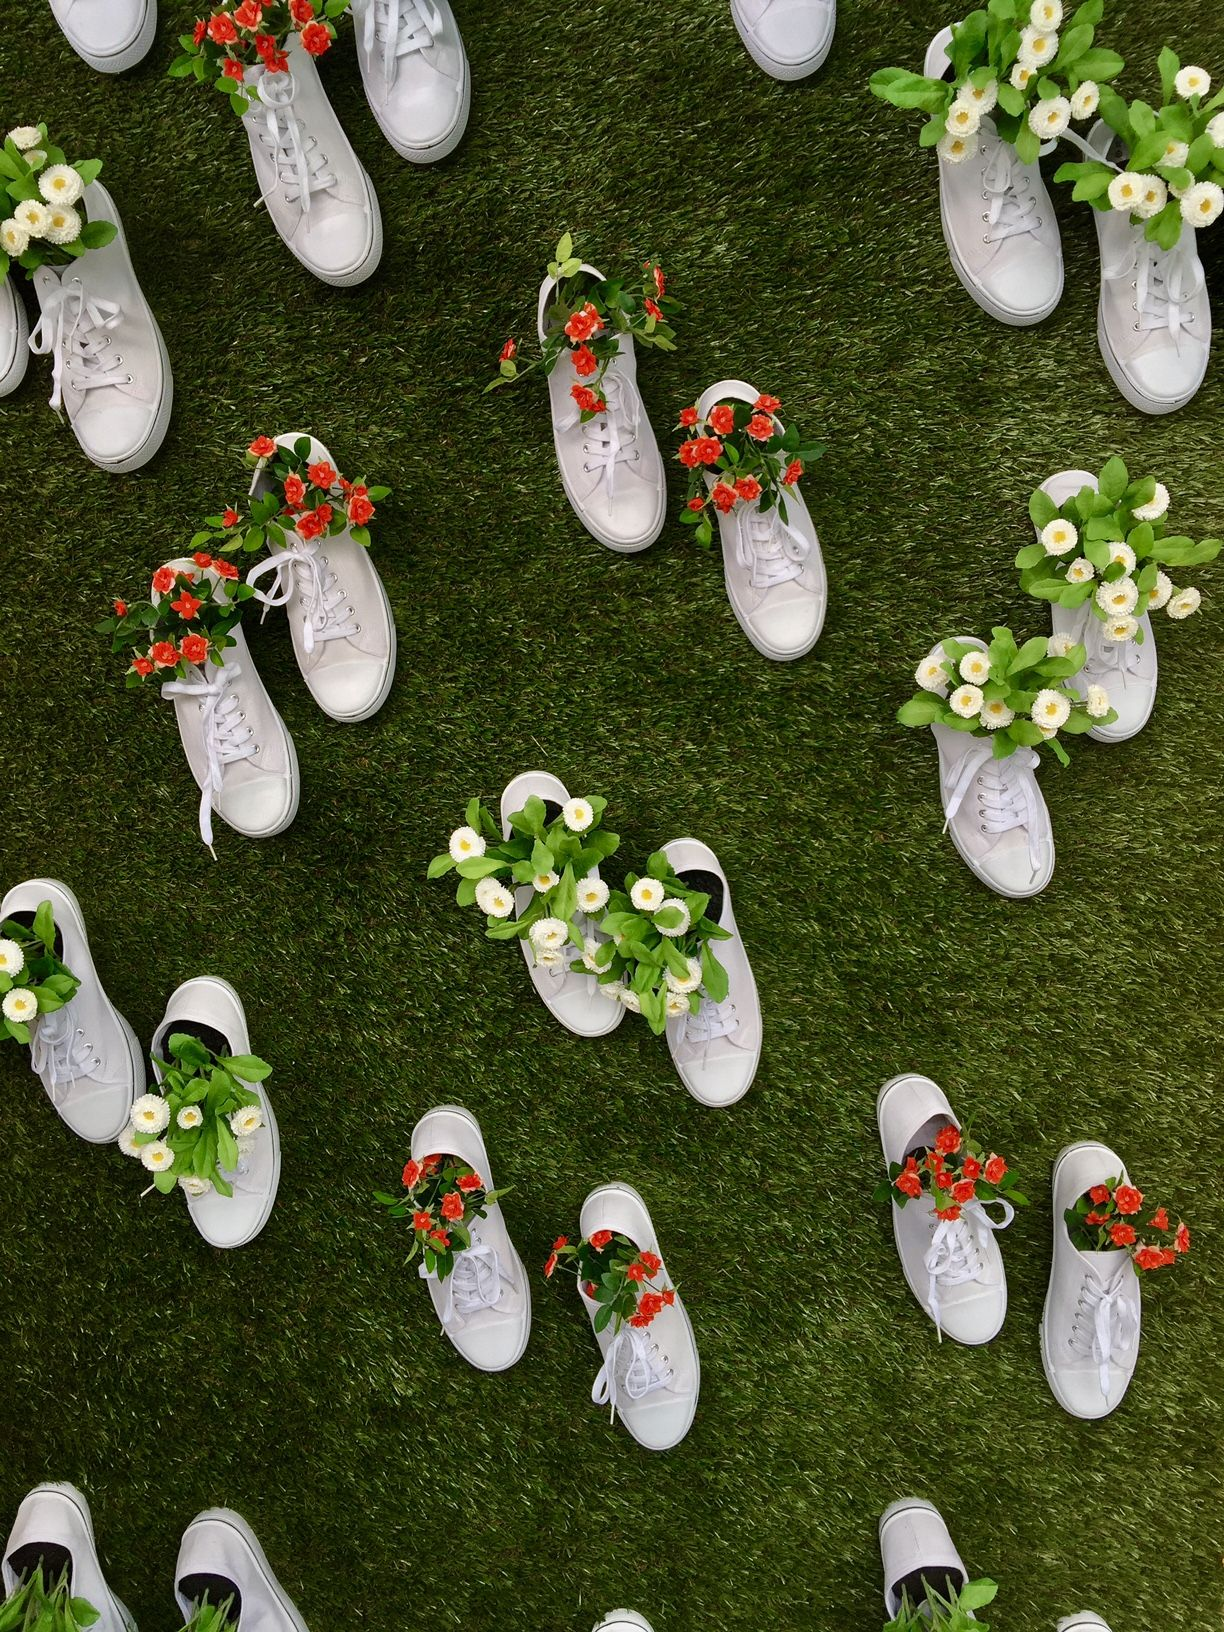 Tennis shoes attached to the wall and used as vases for